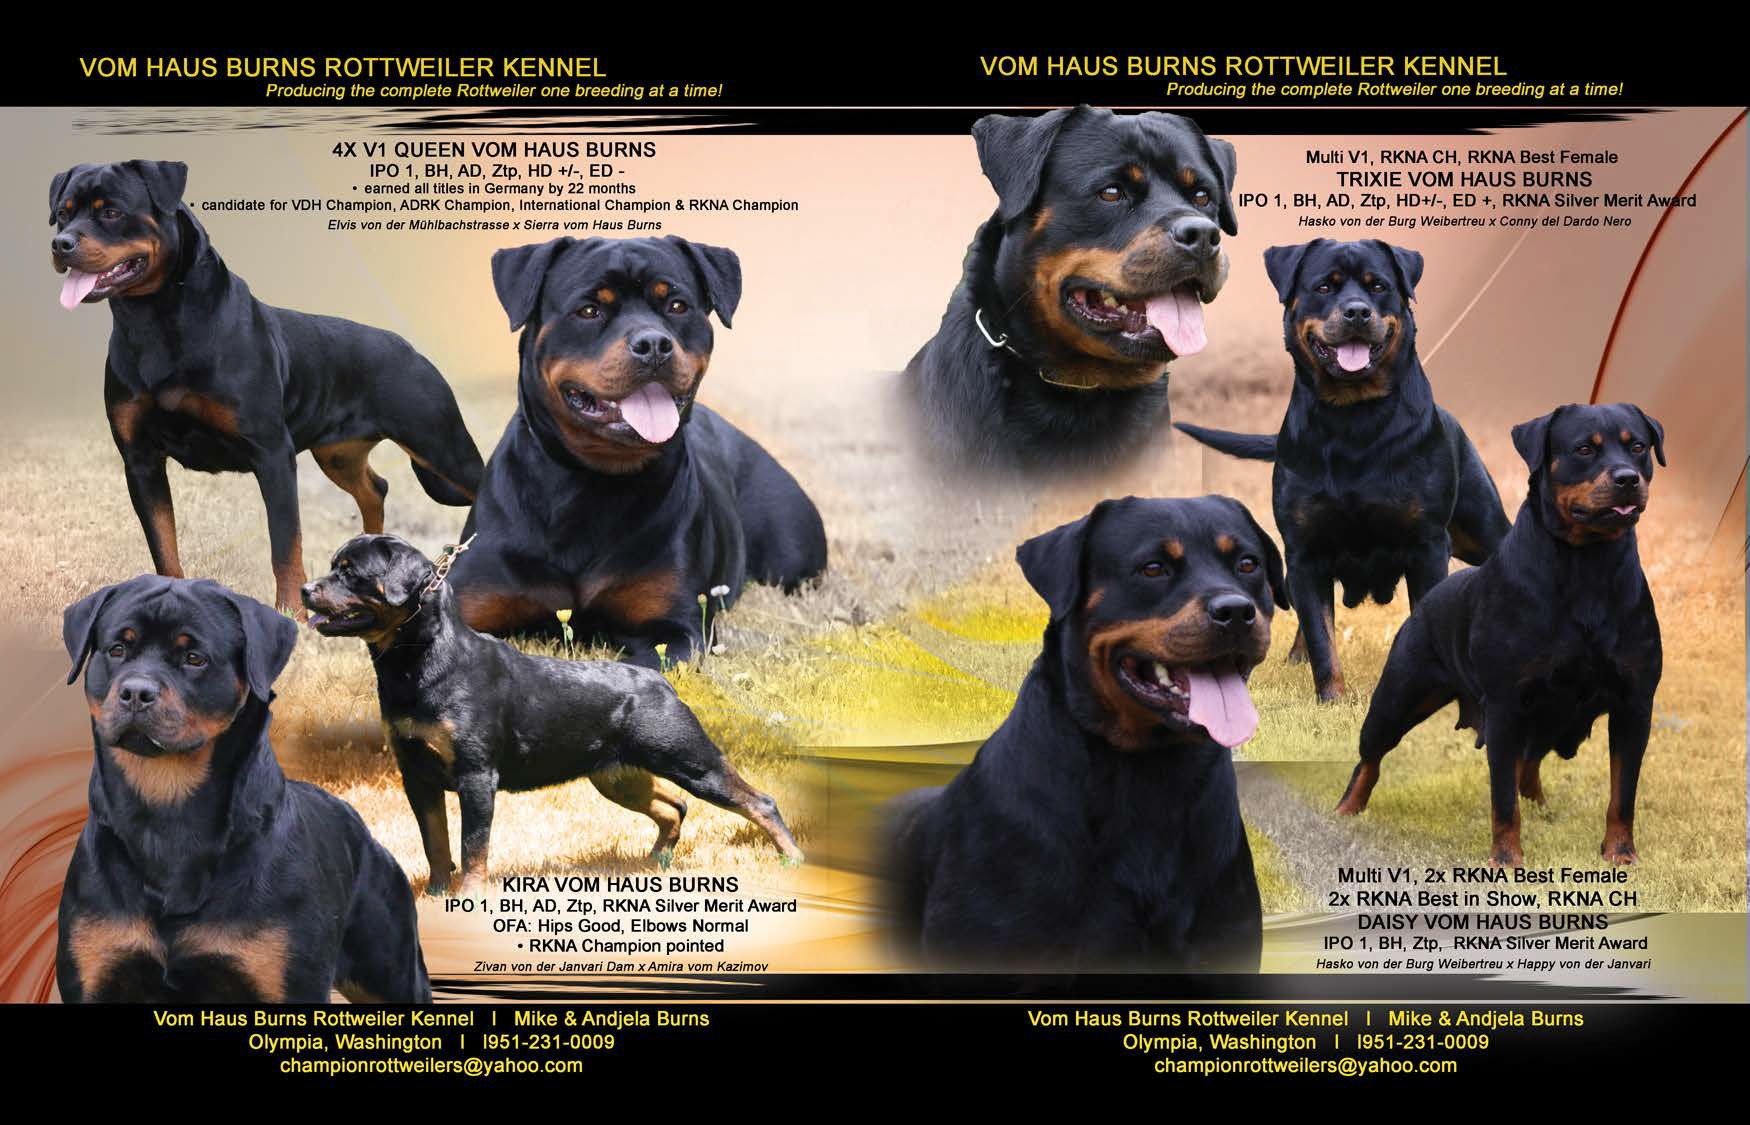 Vom Haus Burns Rottweiler Kennel Producing The Complete Rottweiler